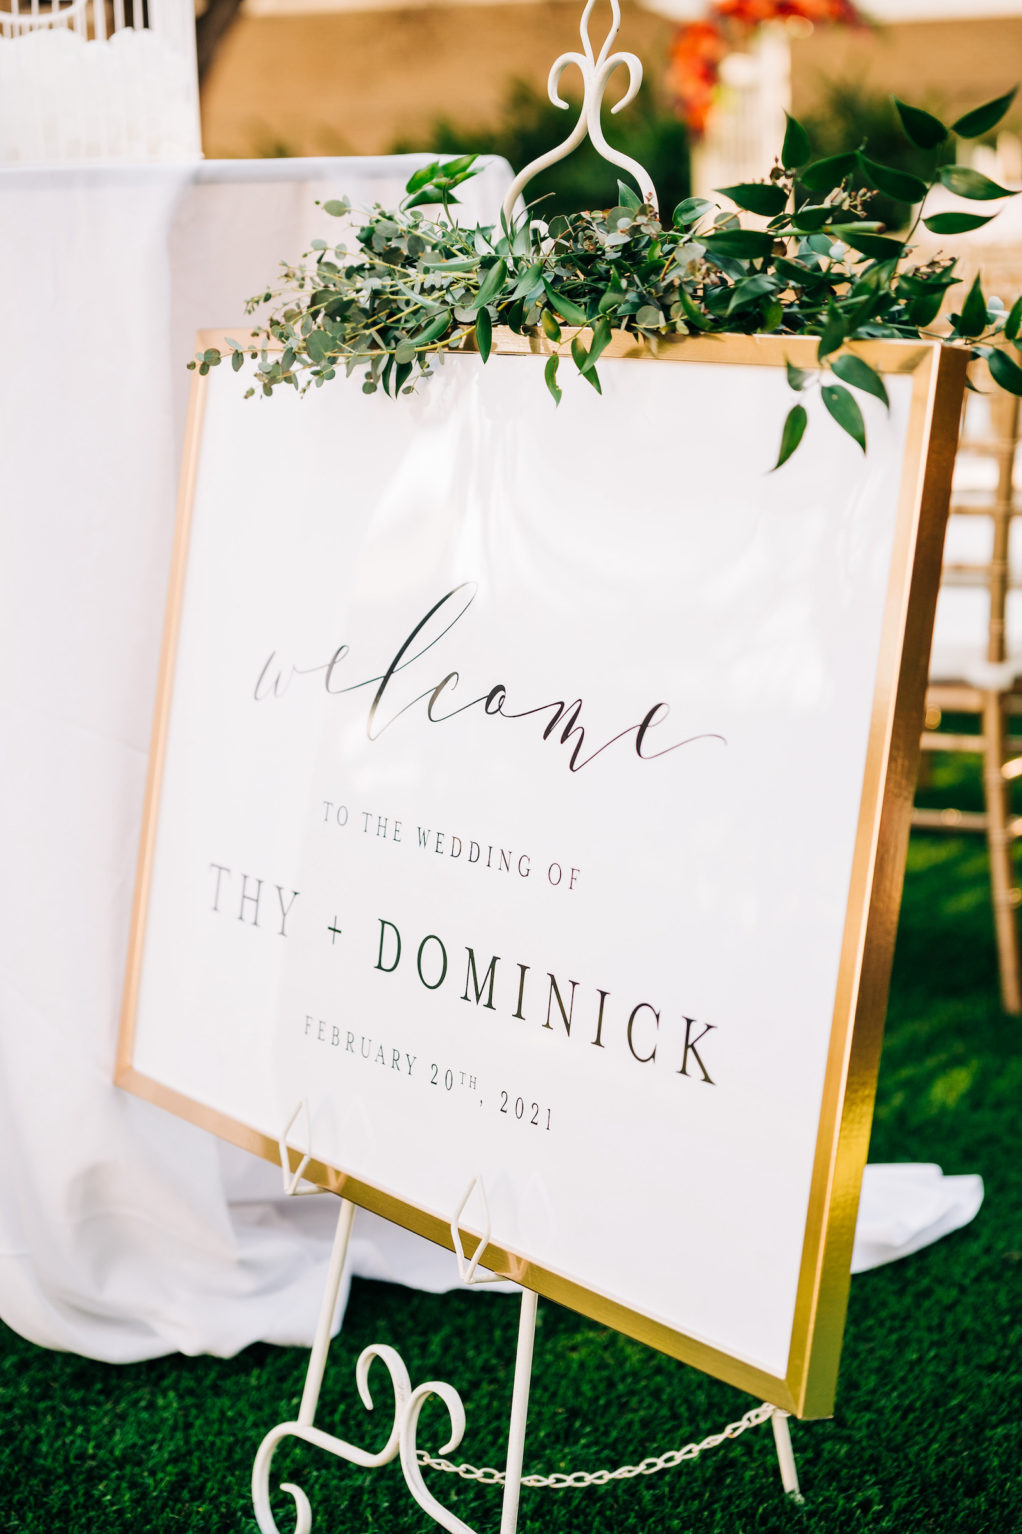 Elegant Garden Wedding Ceremony Decor, White Welcome Sign in Gold Frame with Greenery Garland   Tampa Bay Wedding Florist Monarch Events and Design